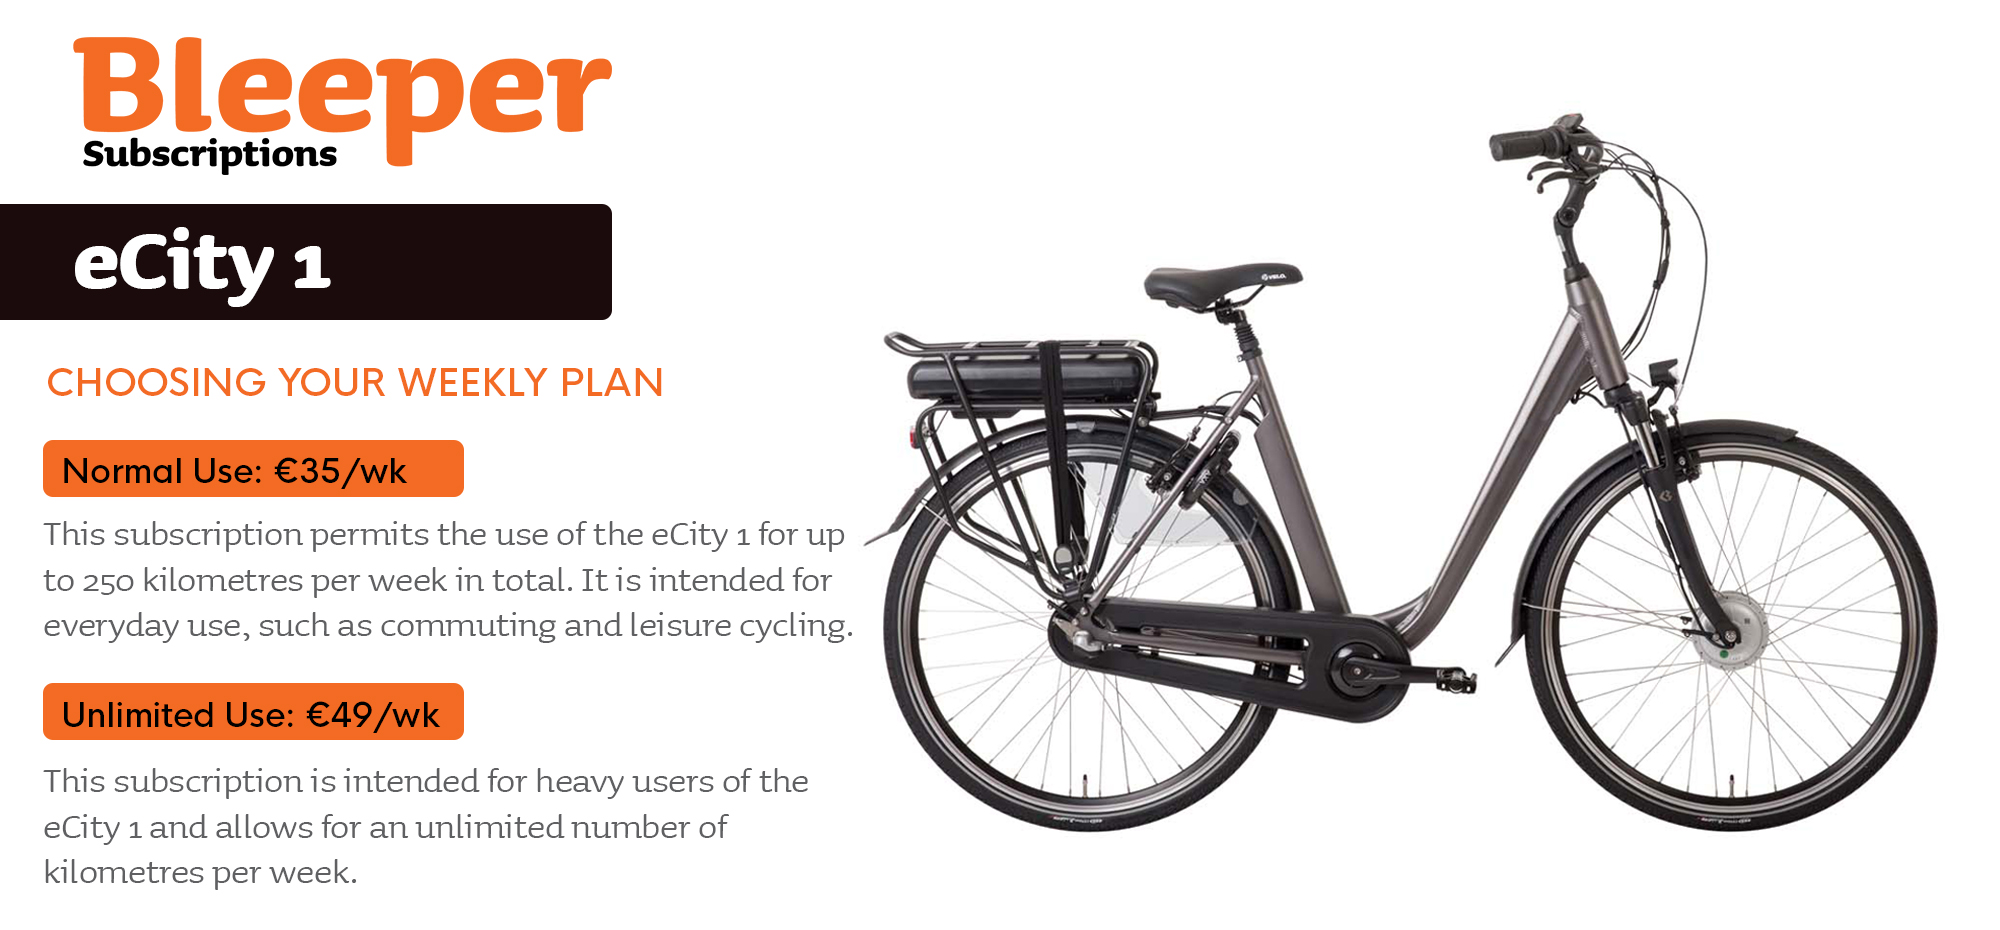 Information graphic showing the Bleeper eCity 1 electric bike and the various rental options available for it.